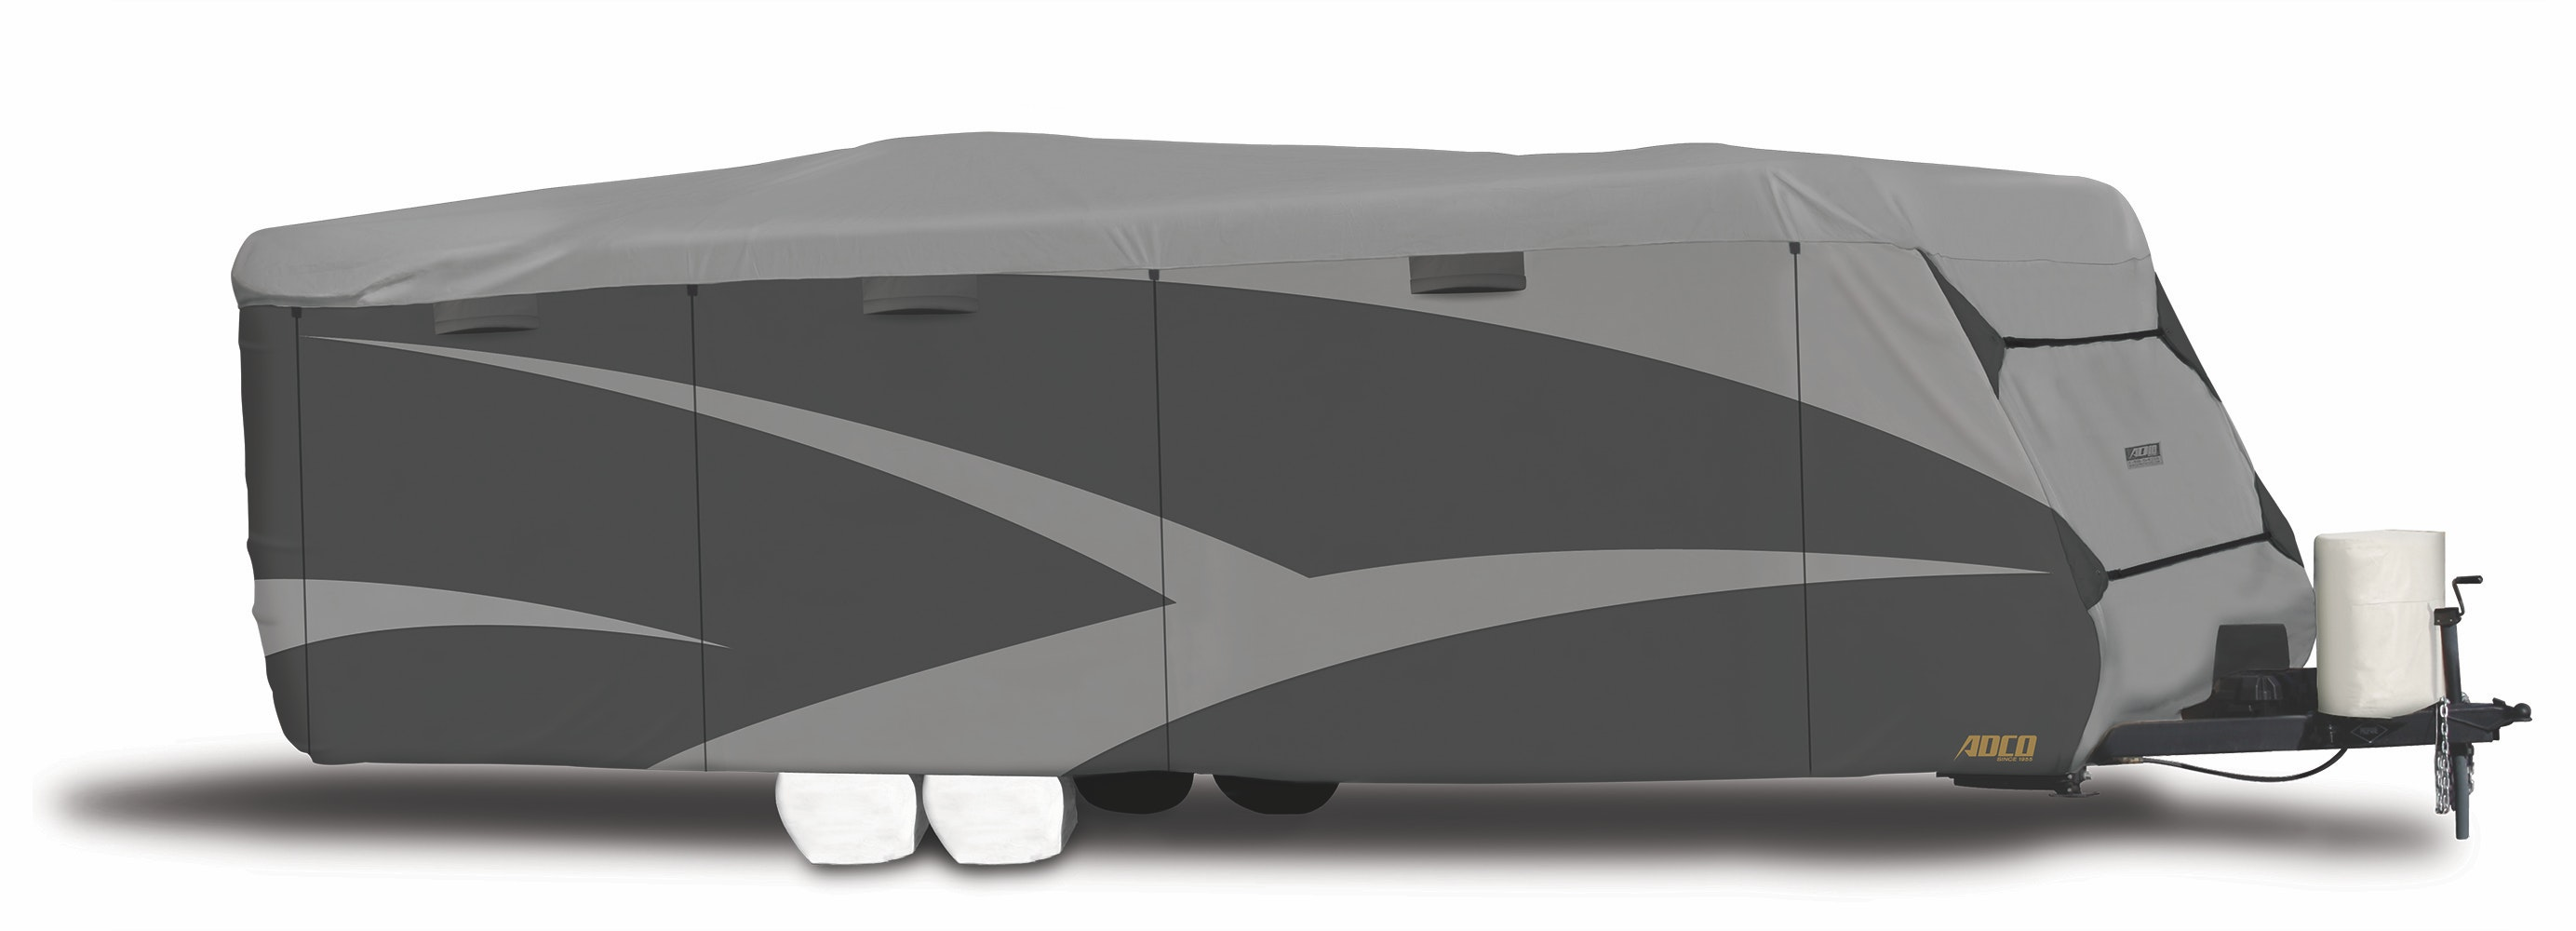 Main Product Image for  ADCO SFS AquaShed 18'1